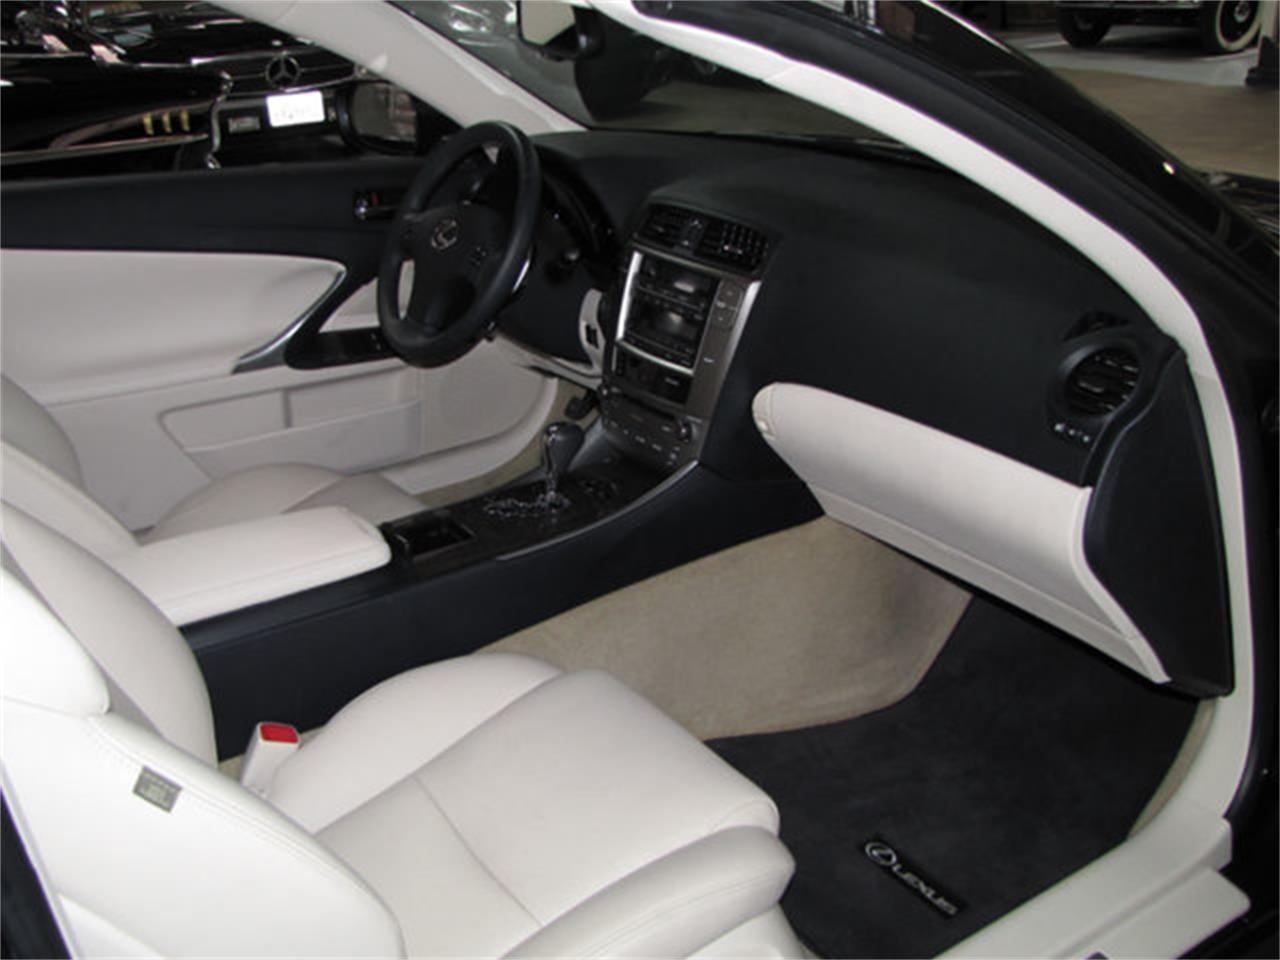 2010 Lexus IS250 (CC-1172702) for sale in Hollywood, California